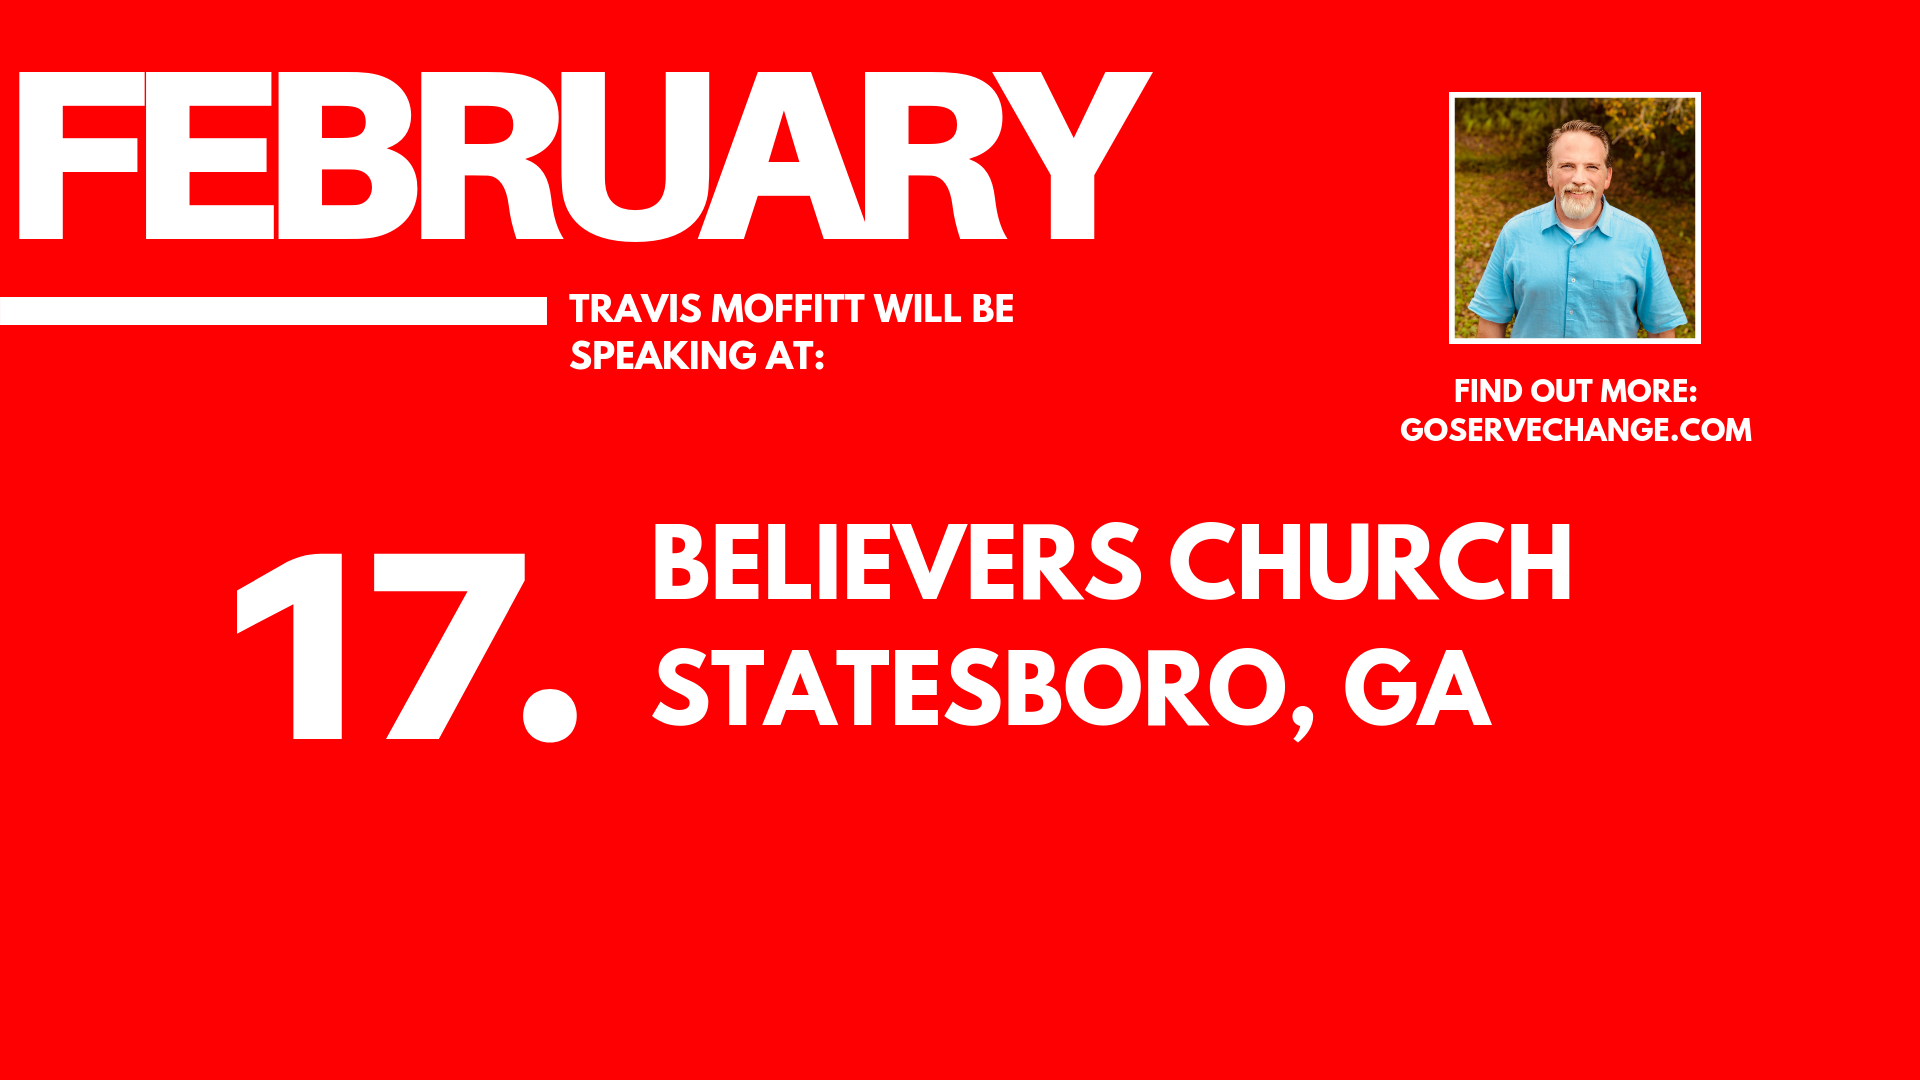 Travis Moffitt will be speaking at Believers Church Statesboro, ga.png